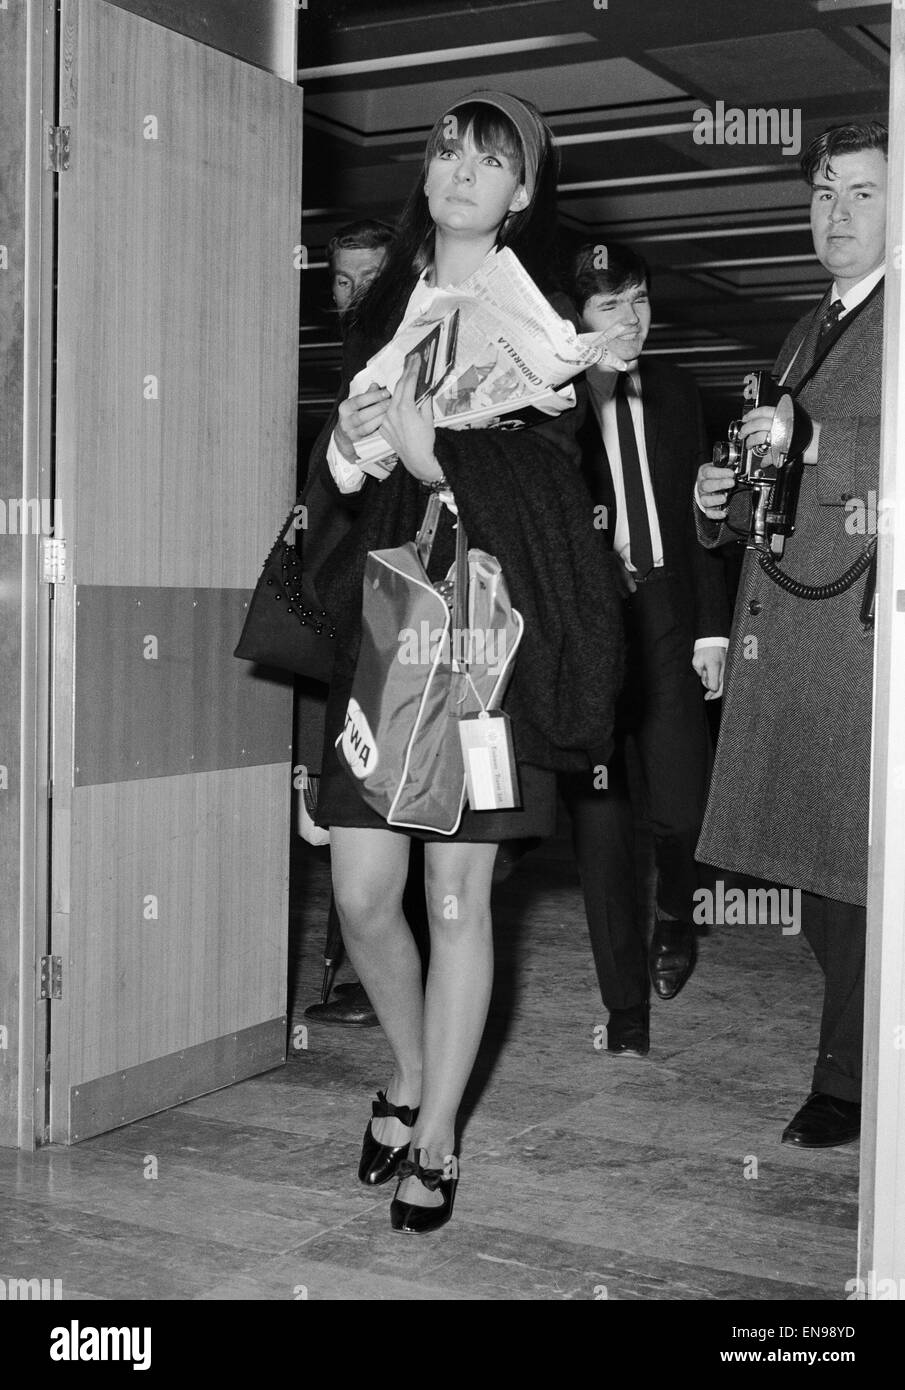 Chrissie Shrimpton, girlfriend of Mick Jagger of The Rolling Stones, flying out to join him at the end of their Stock Photo